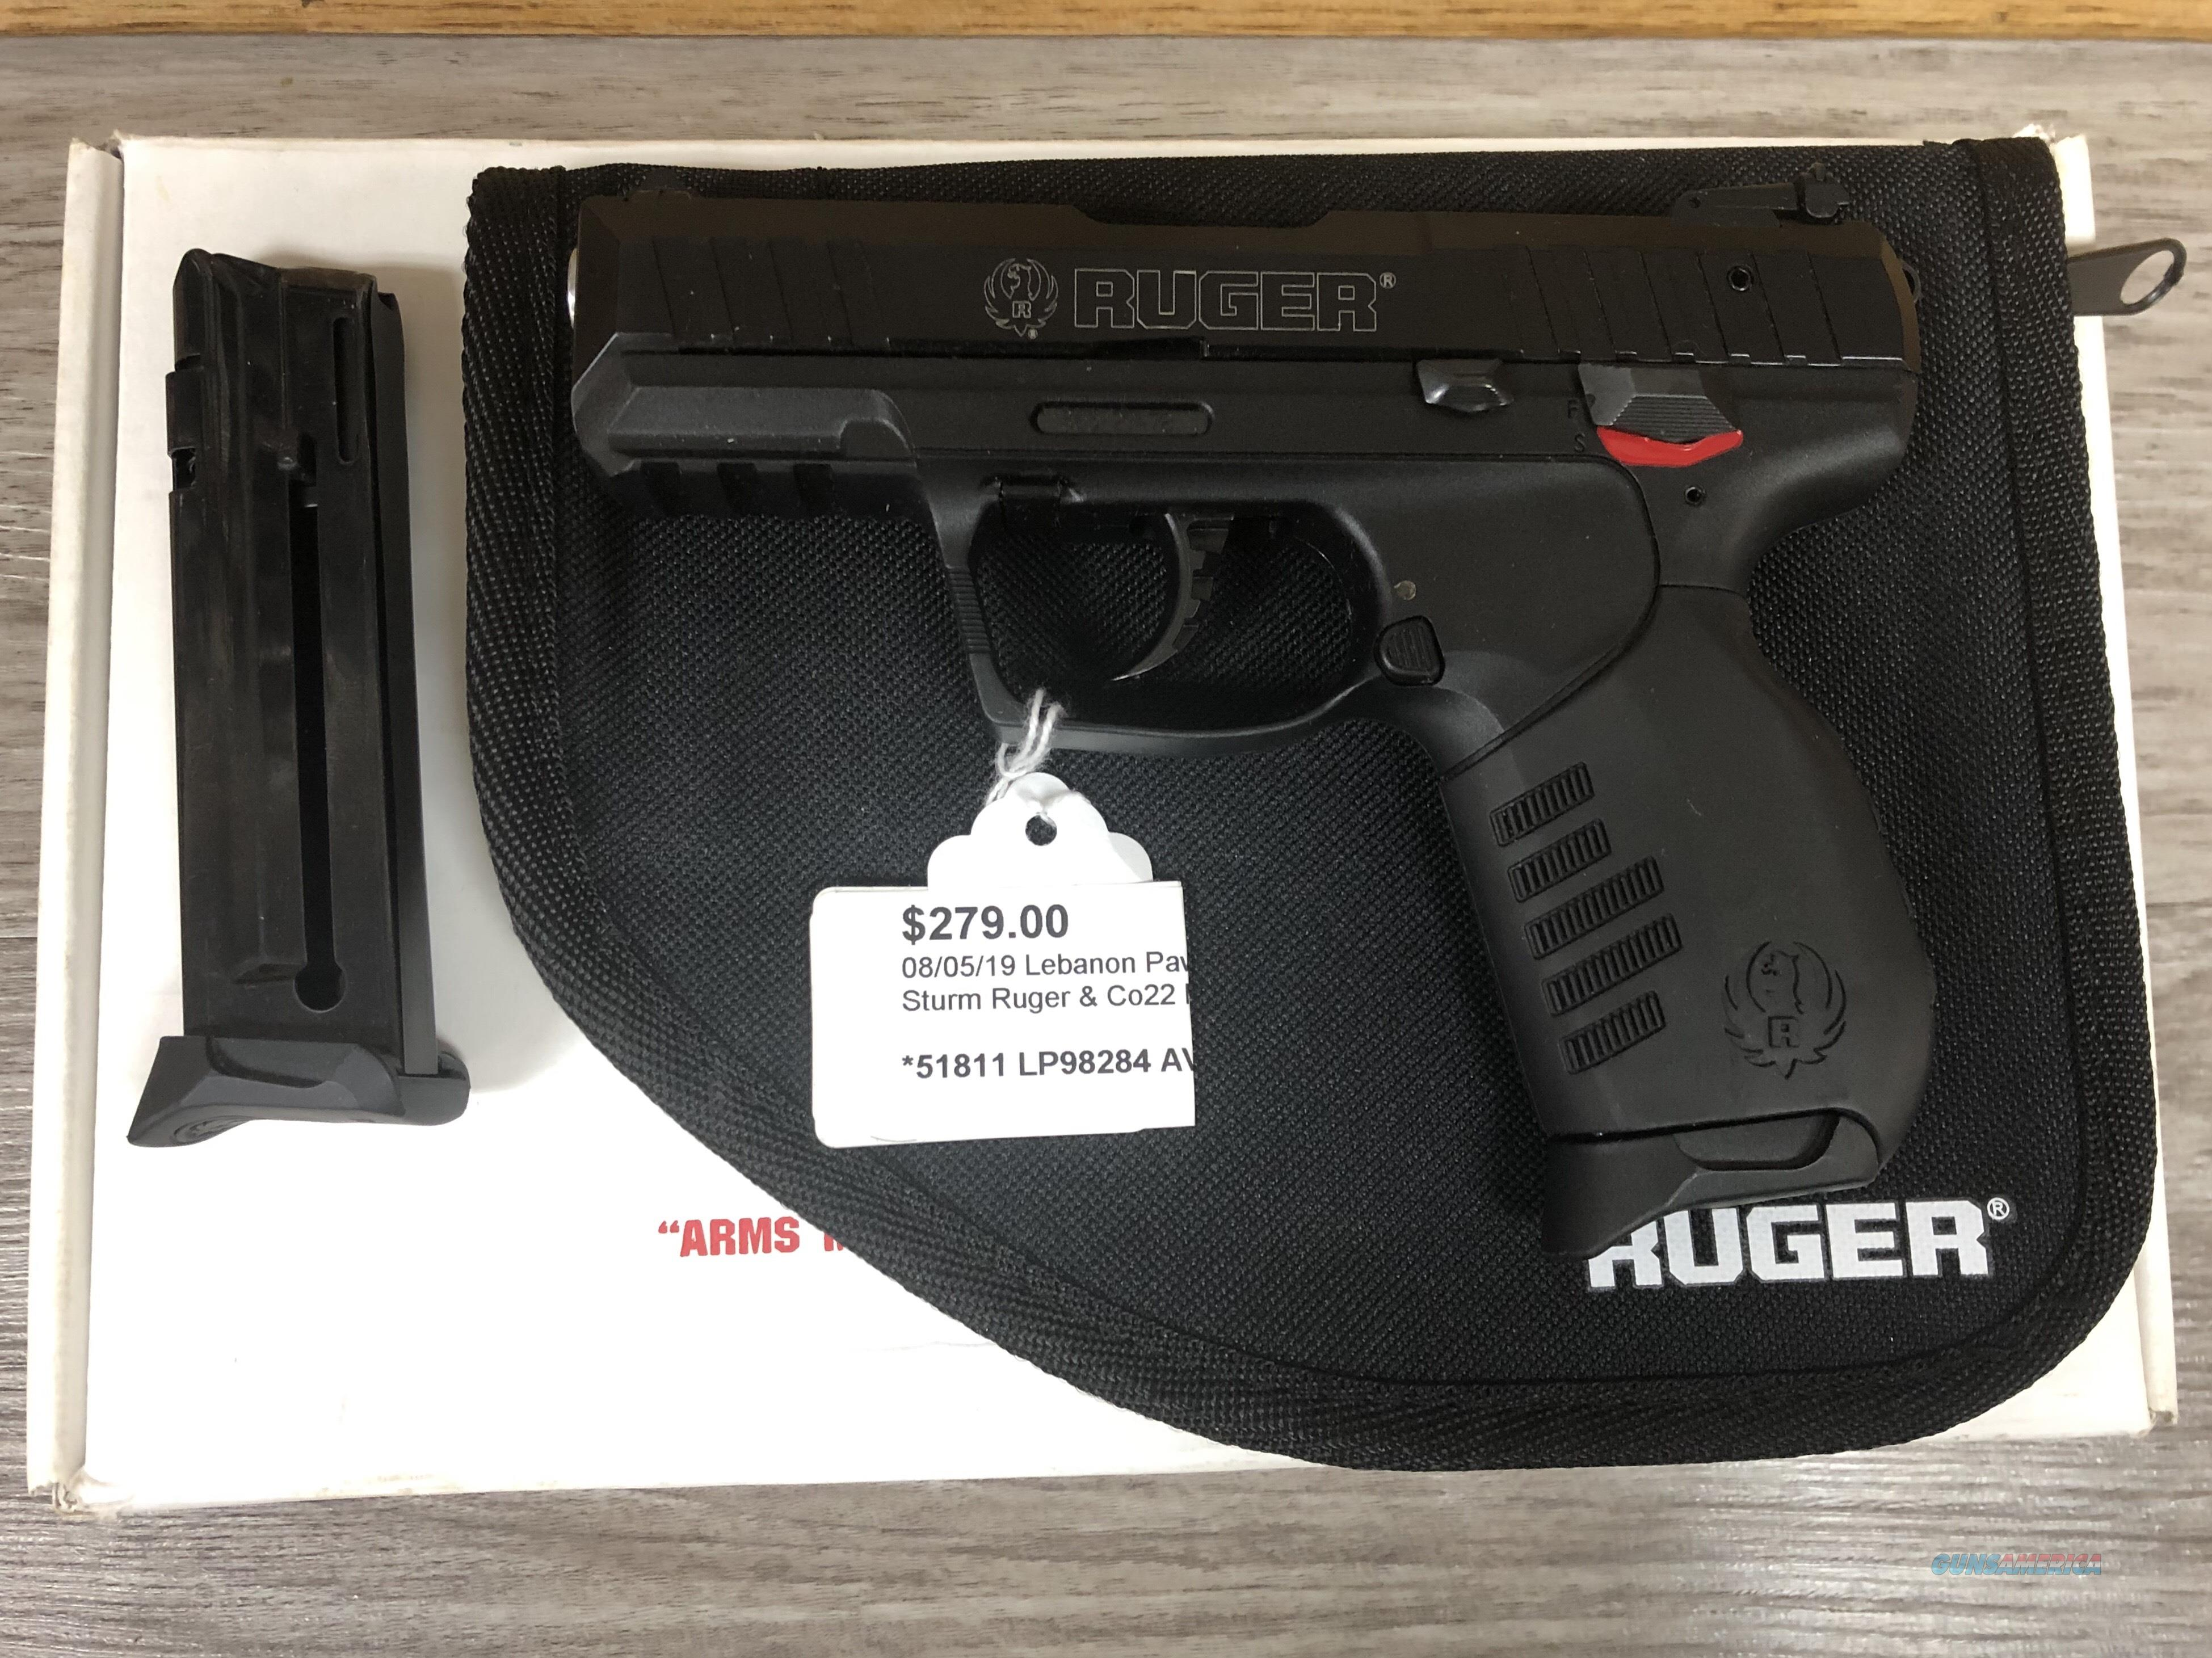 Ruger p22 price